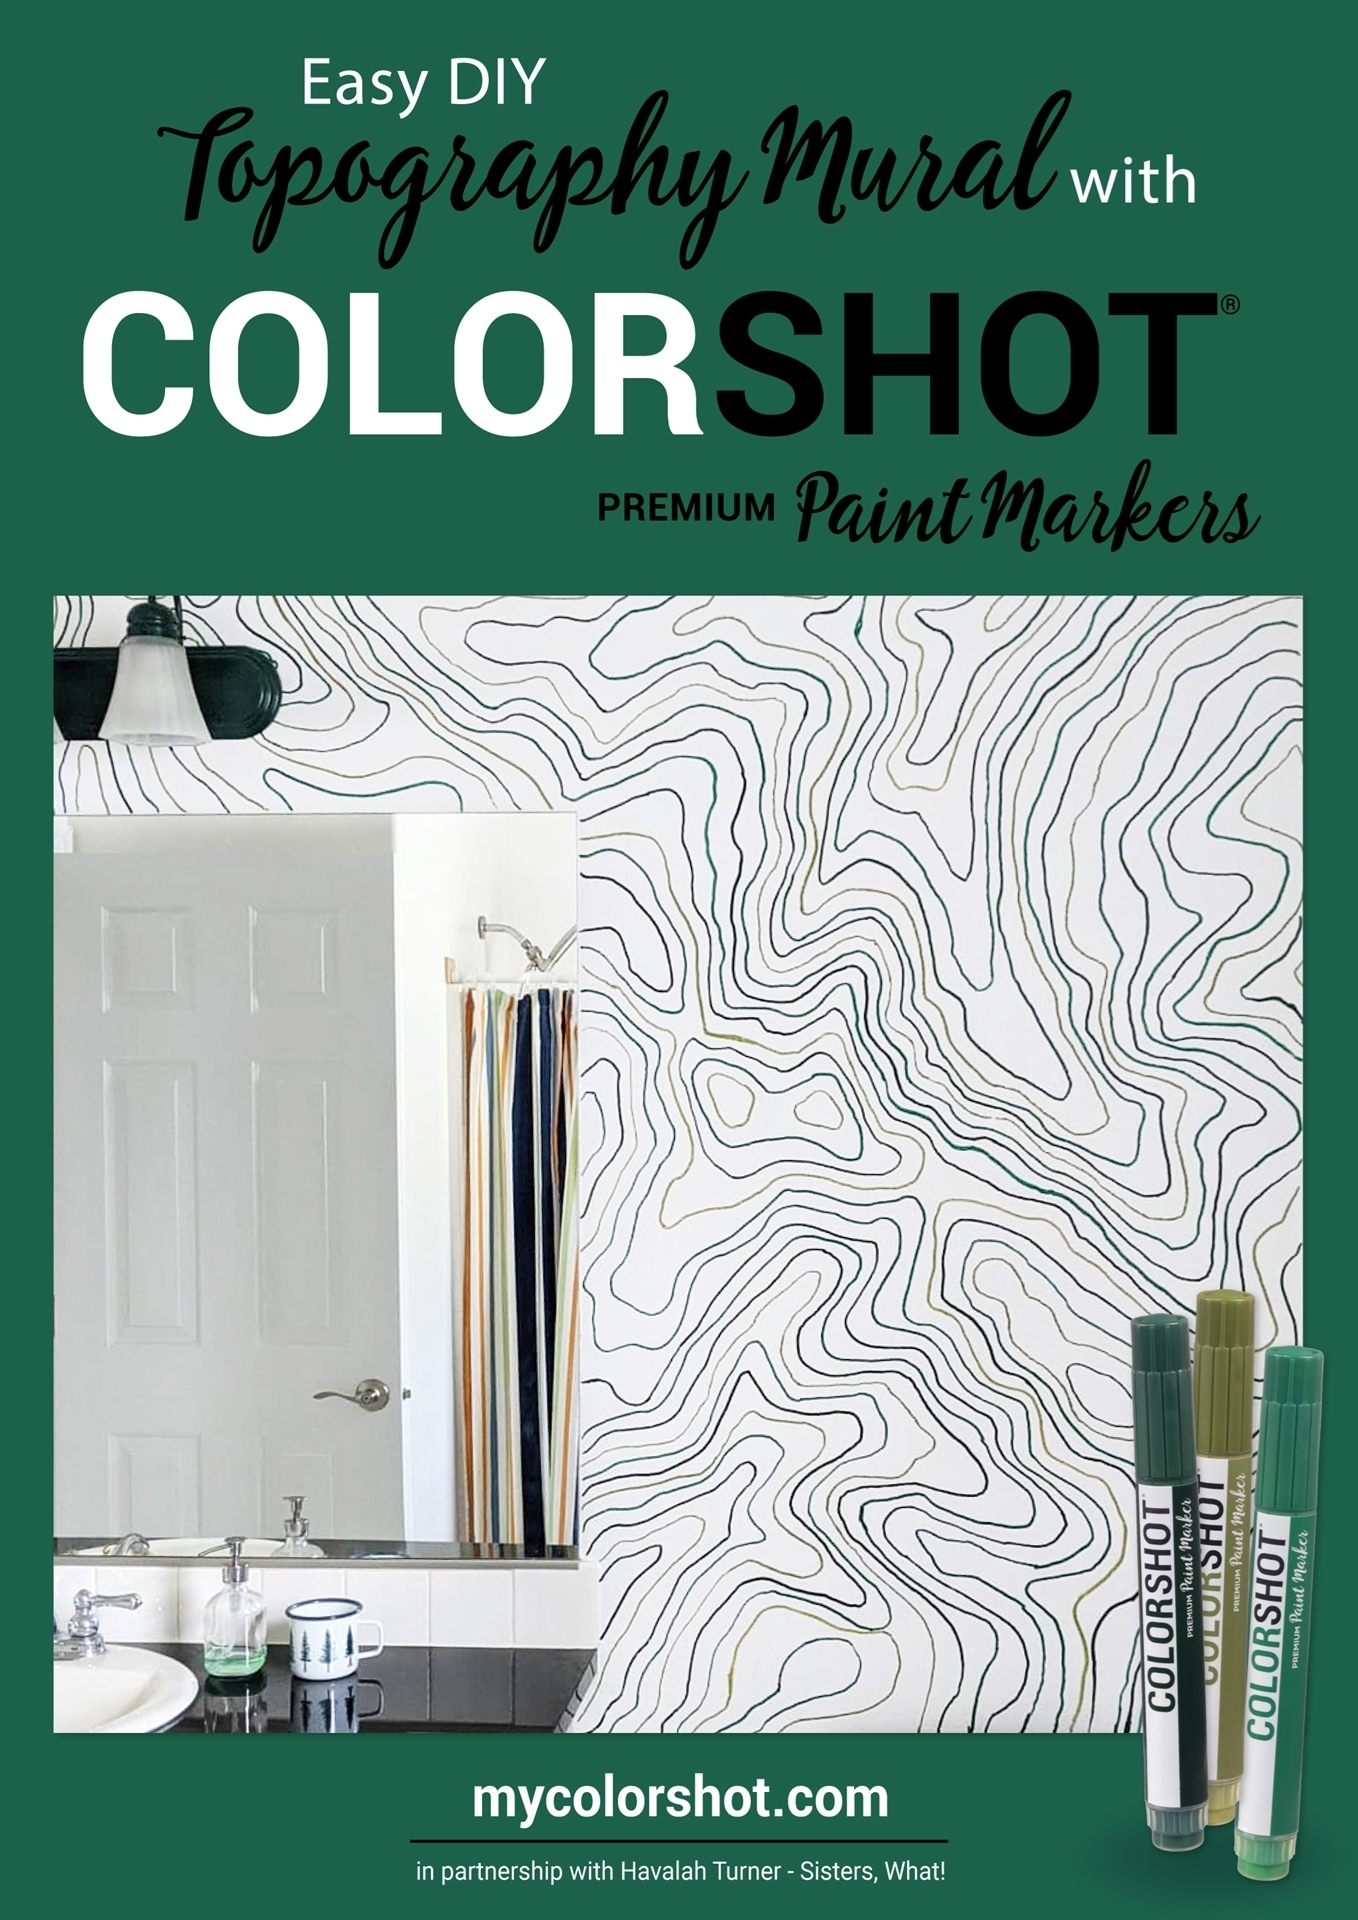 Topography Wall Mural with COLORSHOT